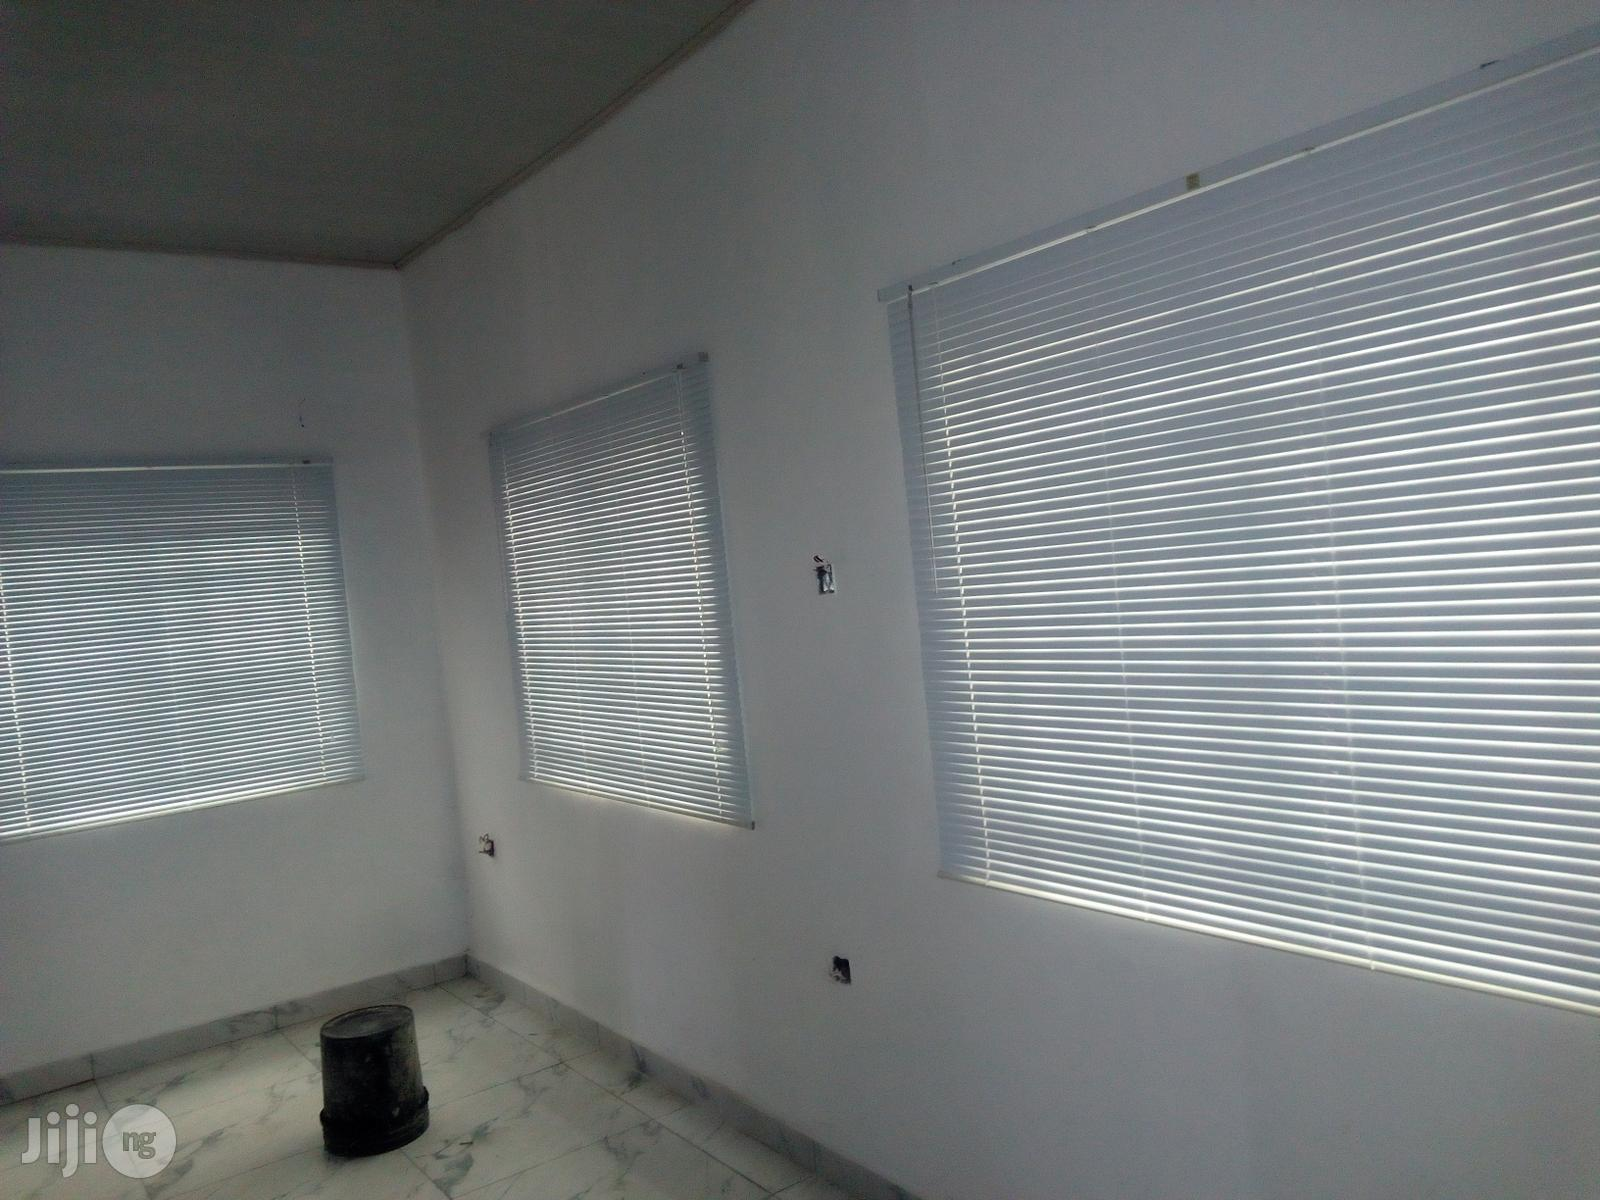 Blind Curtains Interior Decoration | Home Accessories for sale in Abakaliki, Ebonyi State, Nigeria